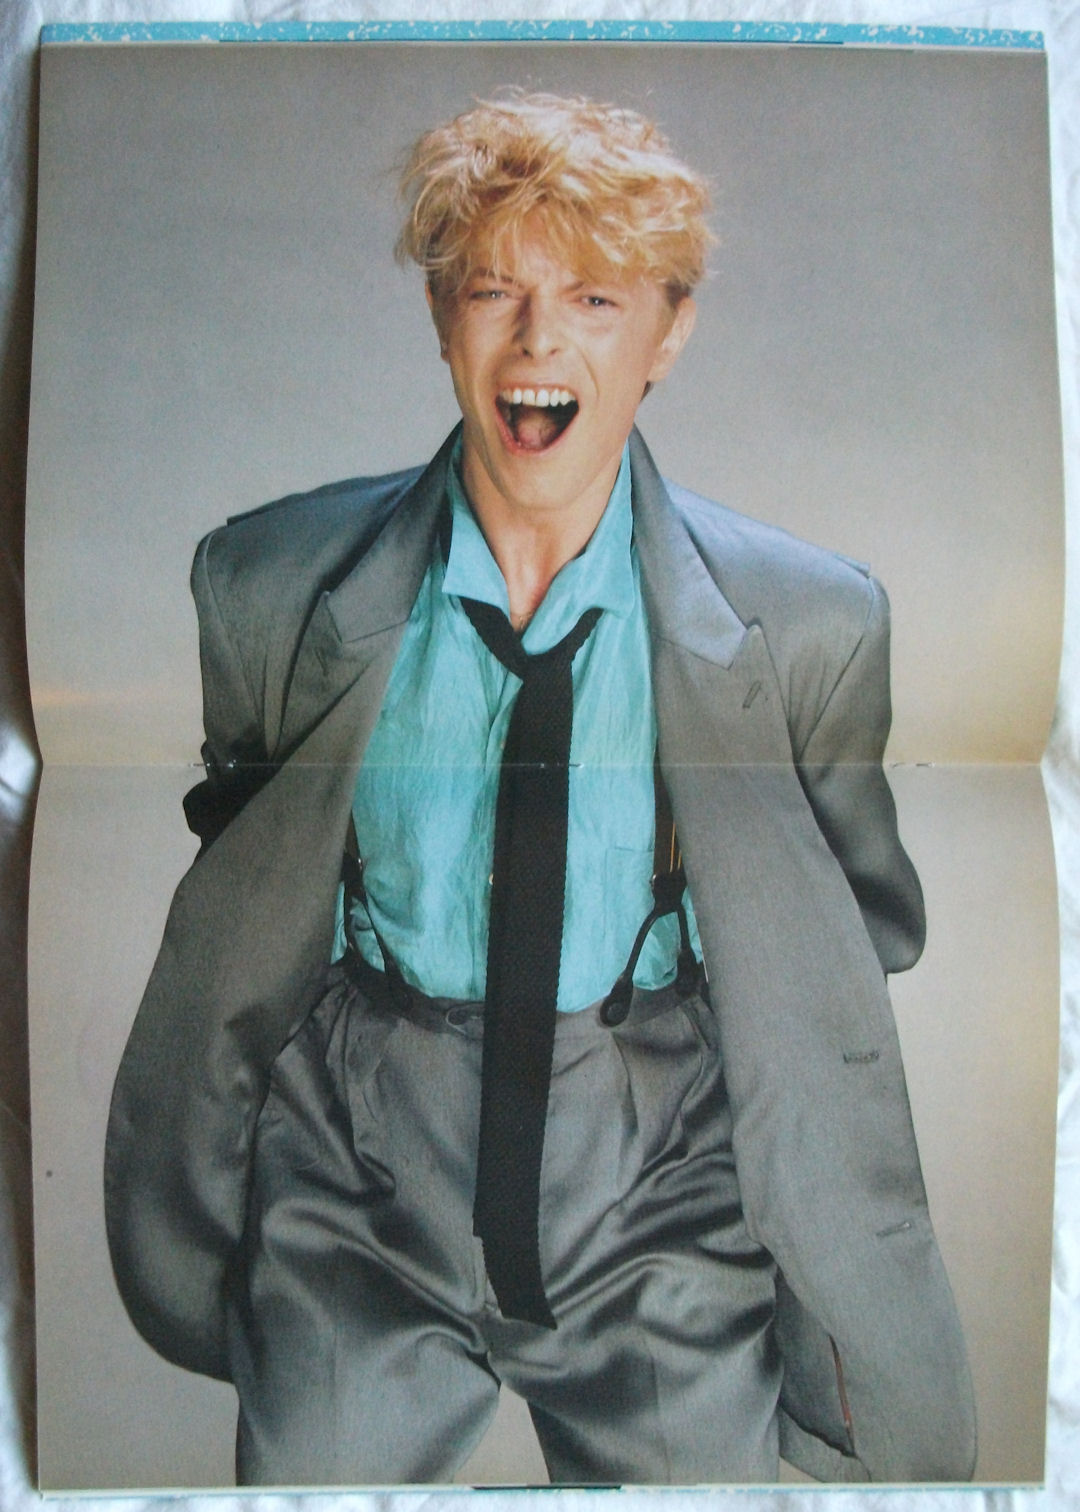 David Bowie Serious Moonlight Program Inside BLOG